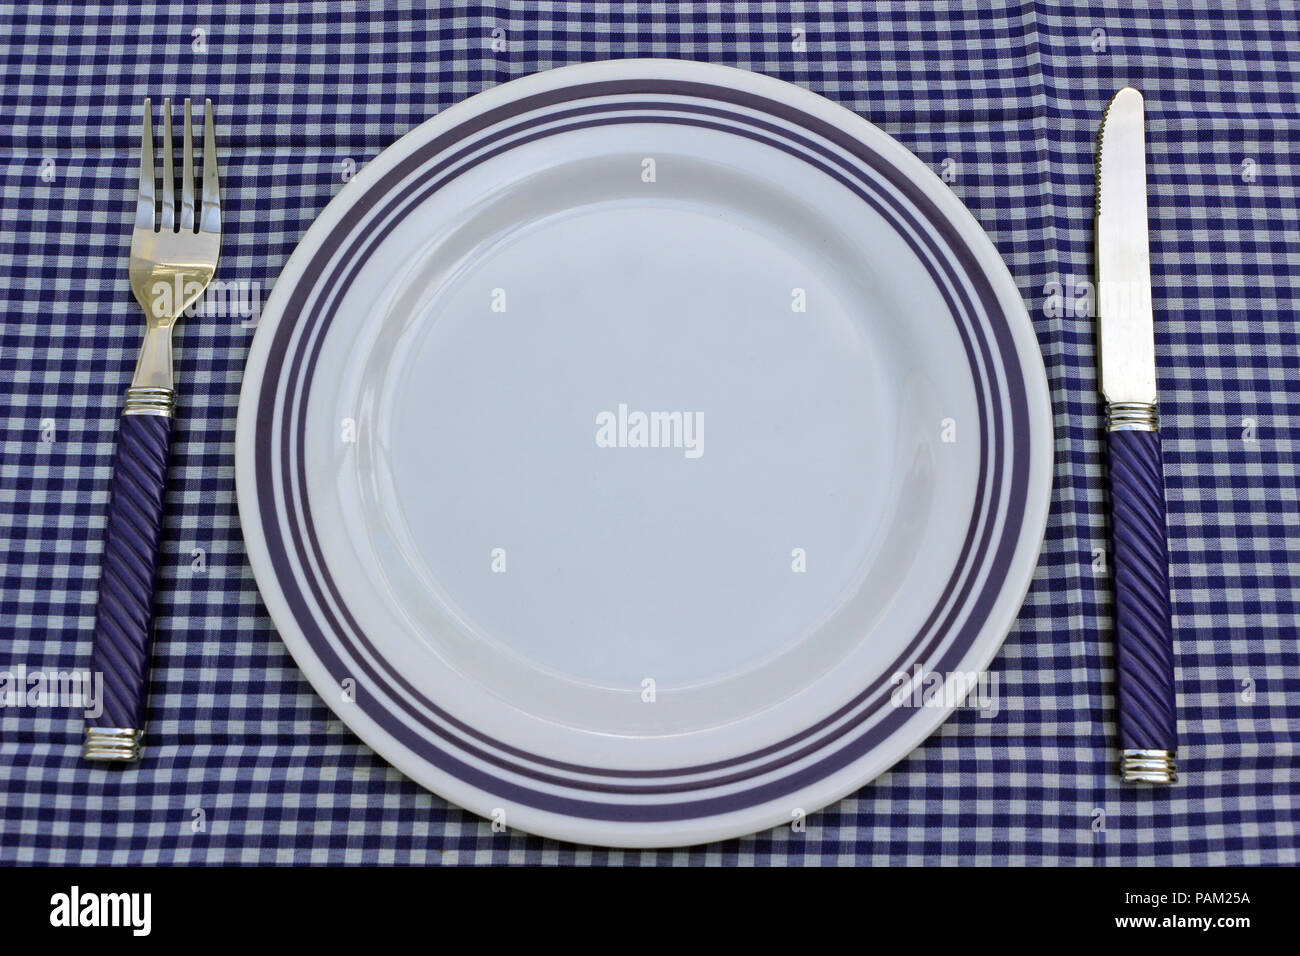 White And Blue Plate With Cutlery On A Blue Gingham Tablecloth. Picnic Or  Table Setting.